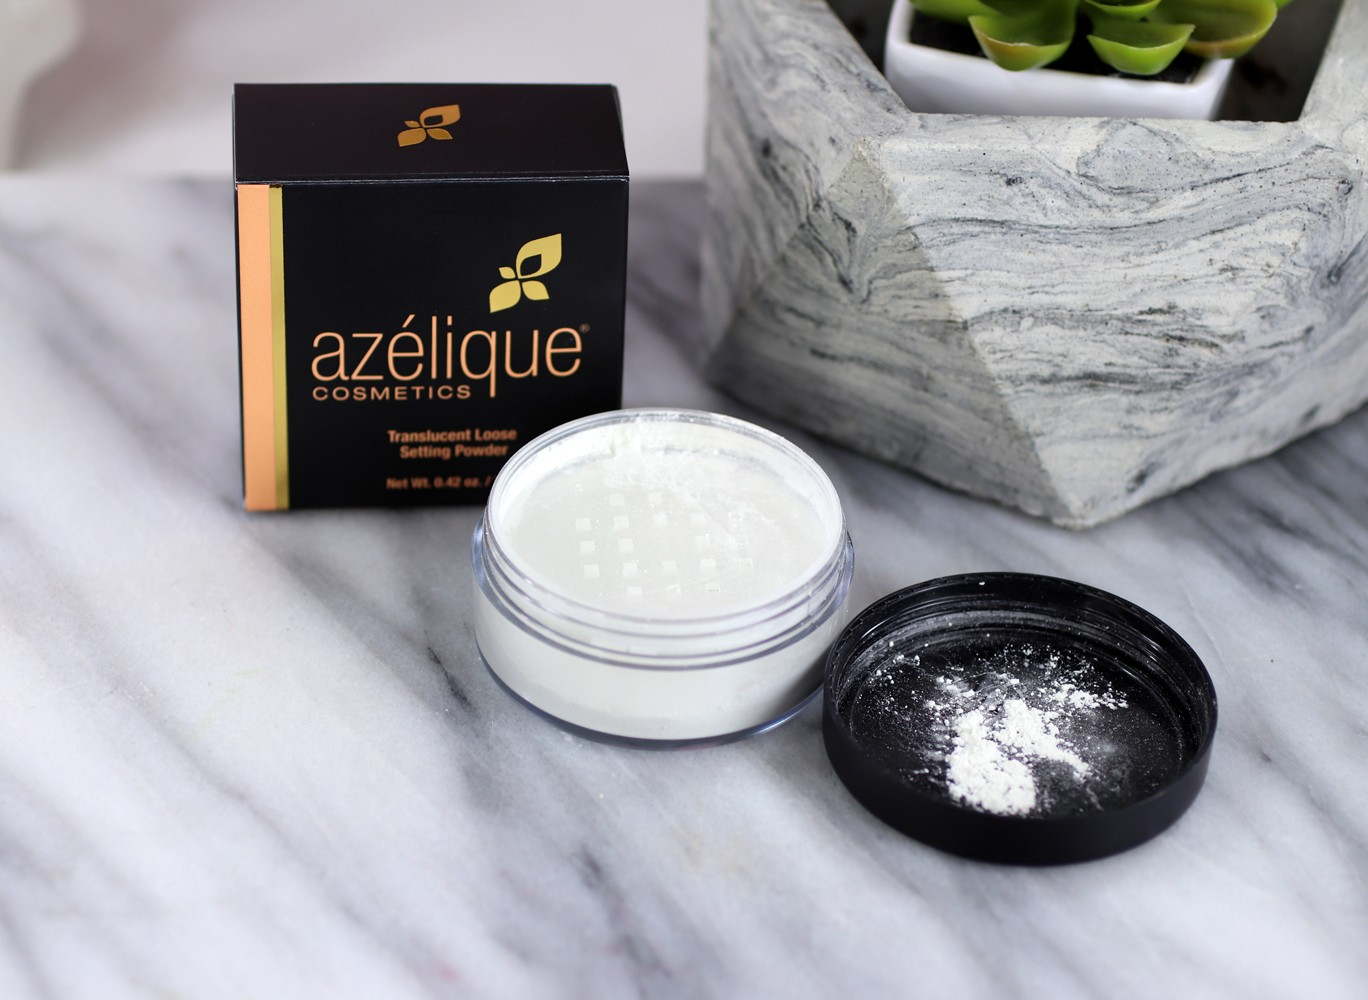 Azelique Translucent Setting Powder - Review of Azelique Cosmetics by Los Angeles cruelty free beauty blogger My Beauty Bunny